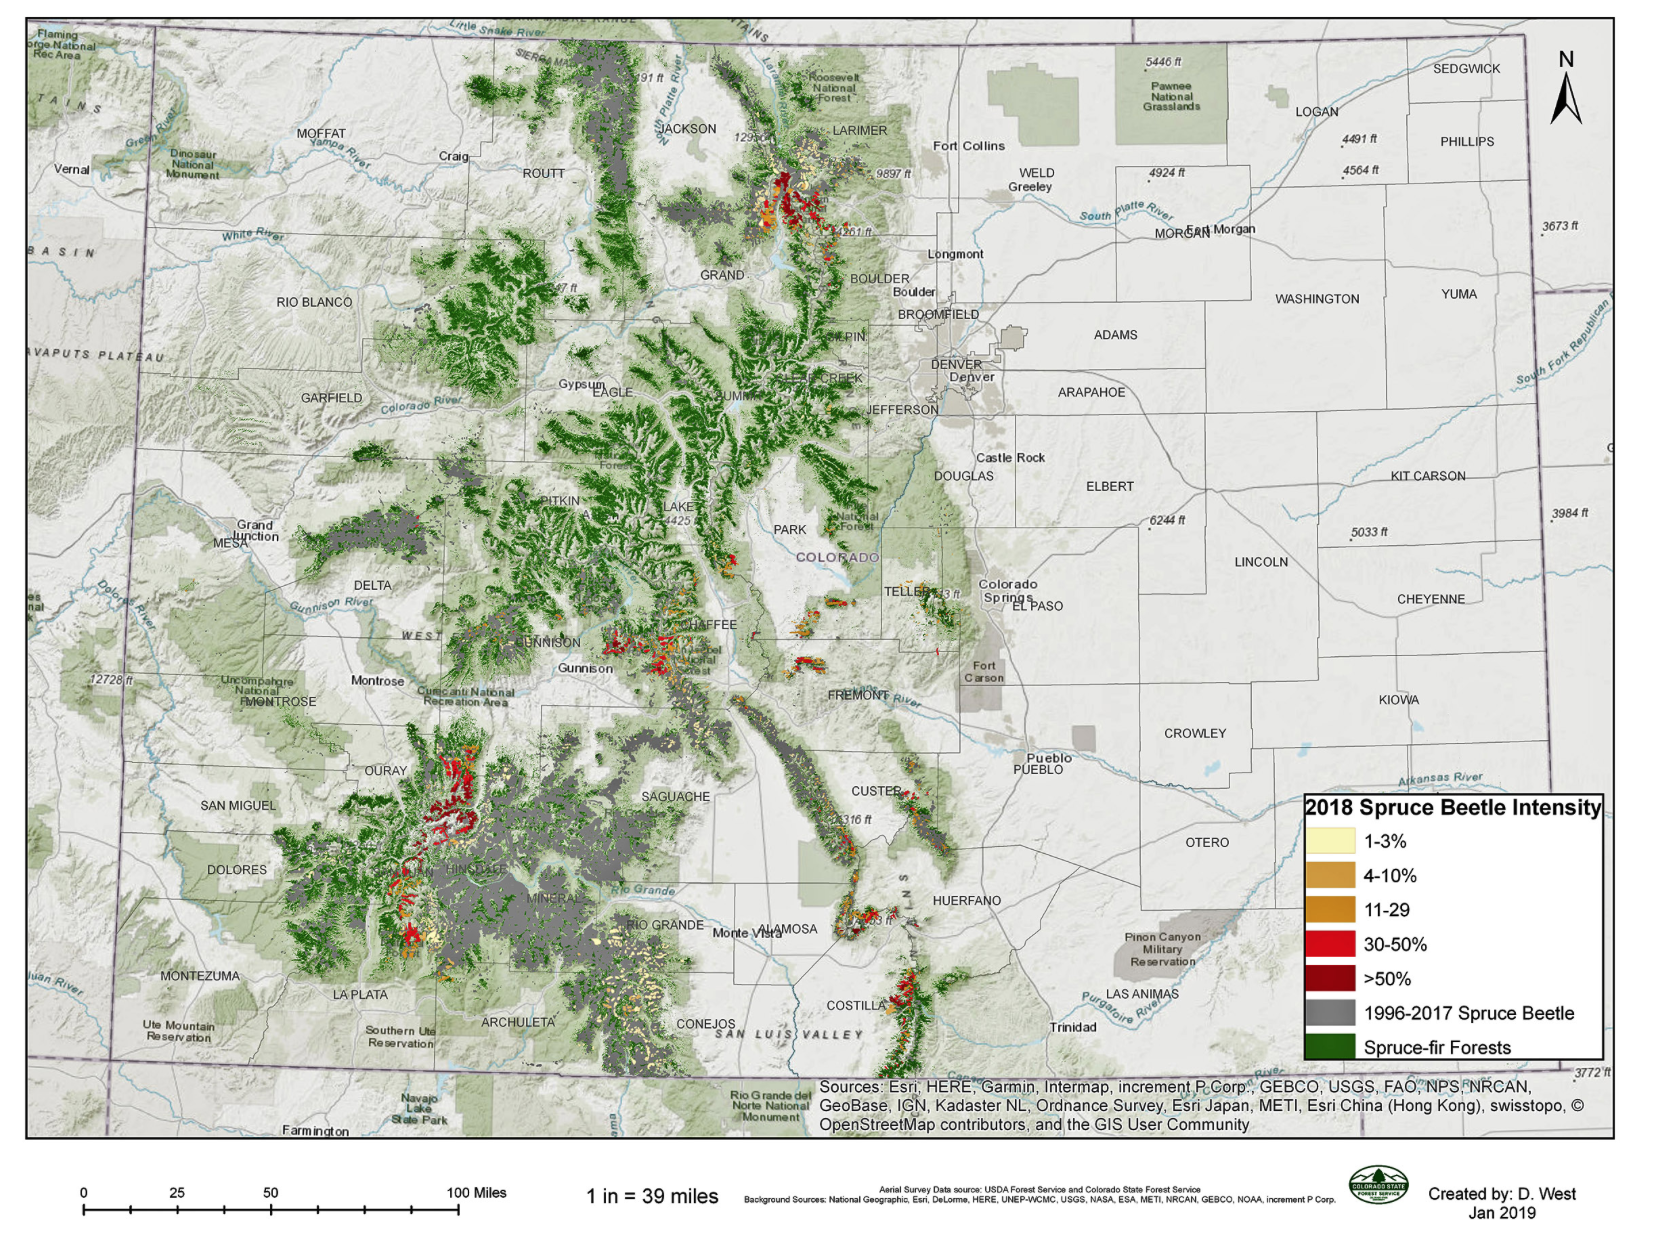 The spruce beetle outbreak in Colorado.